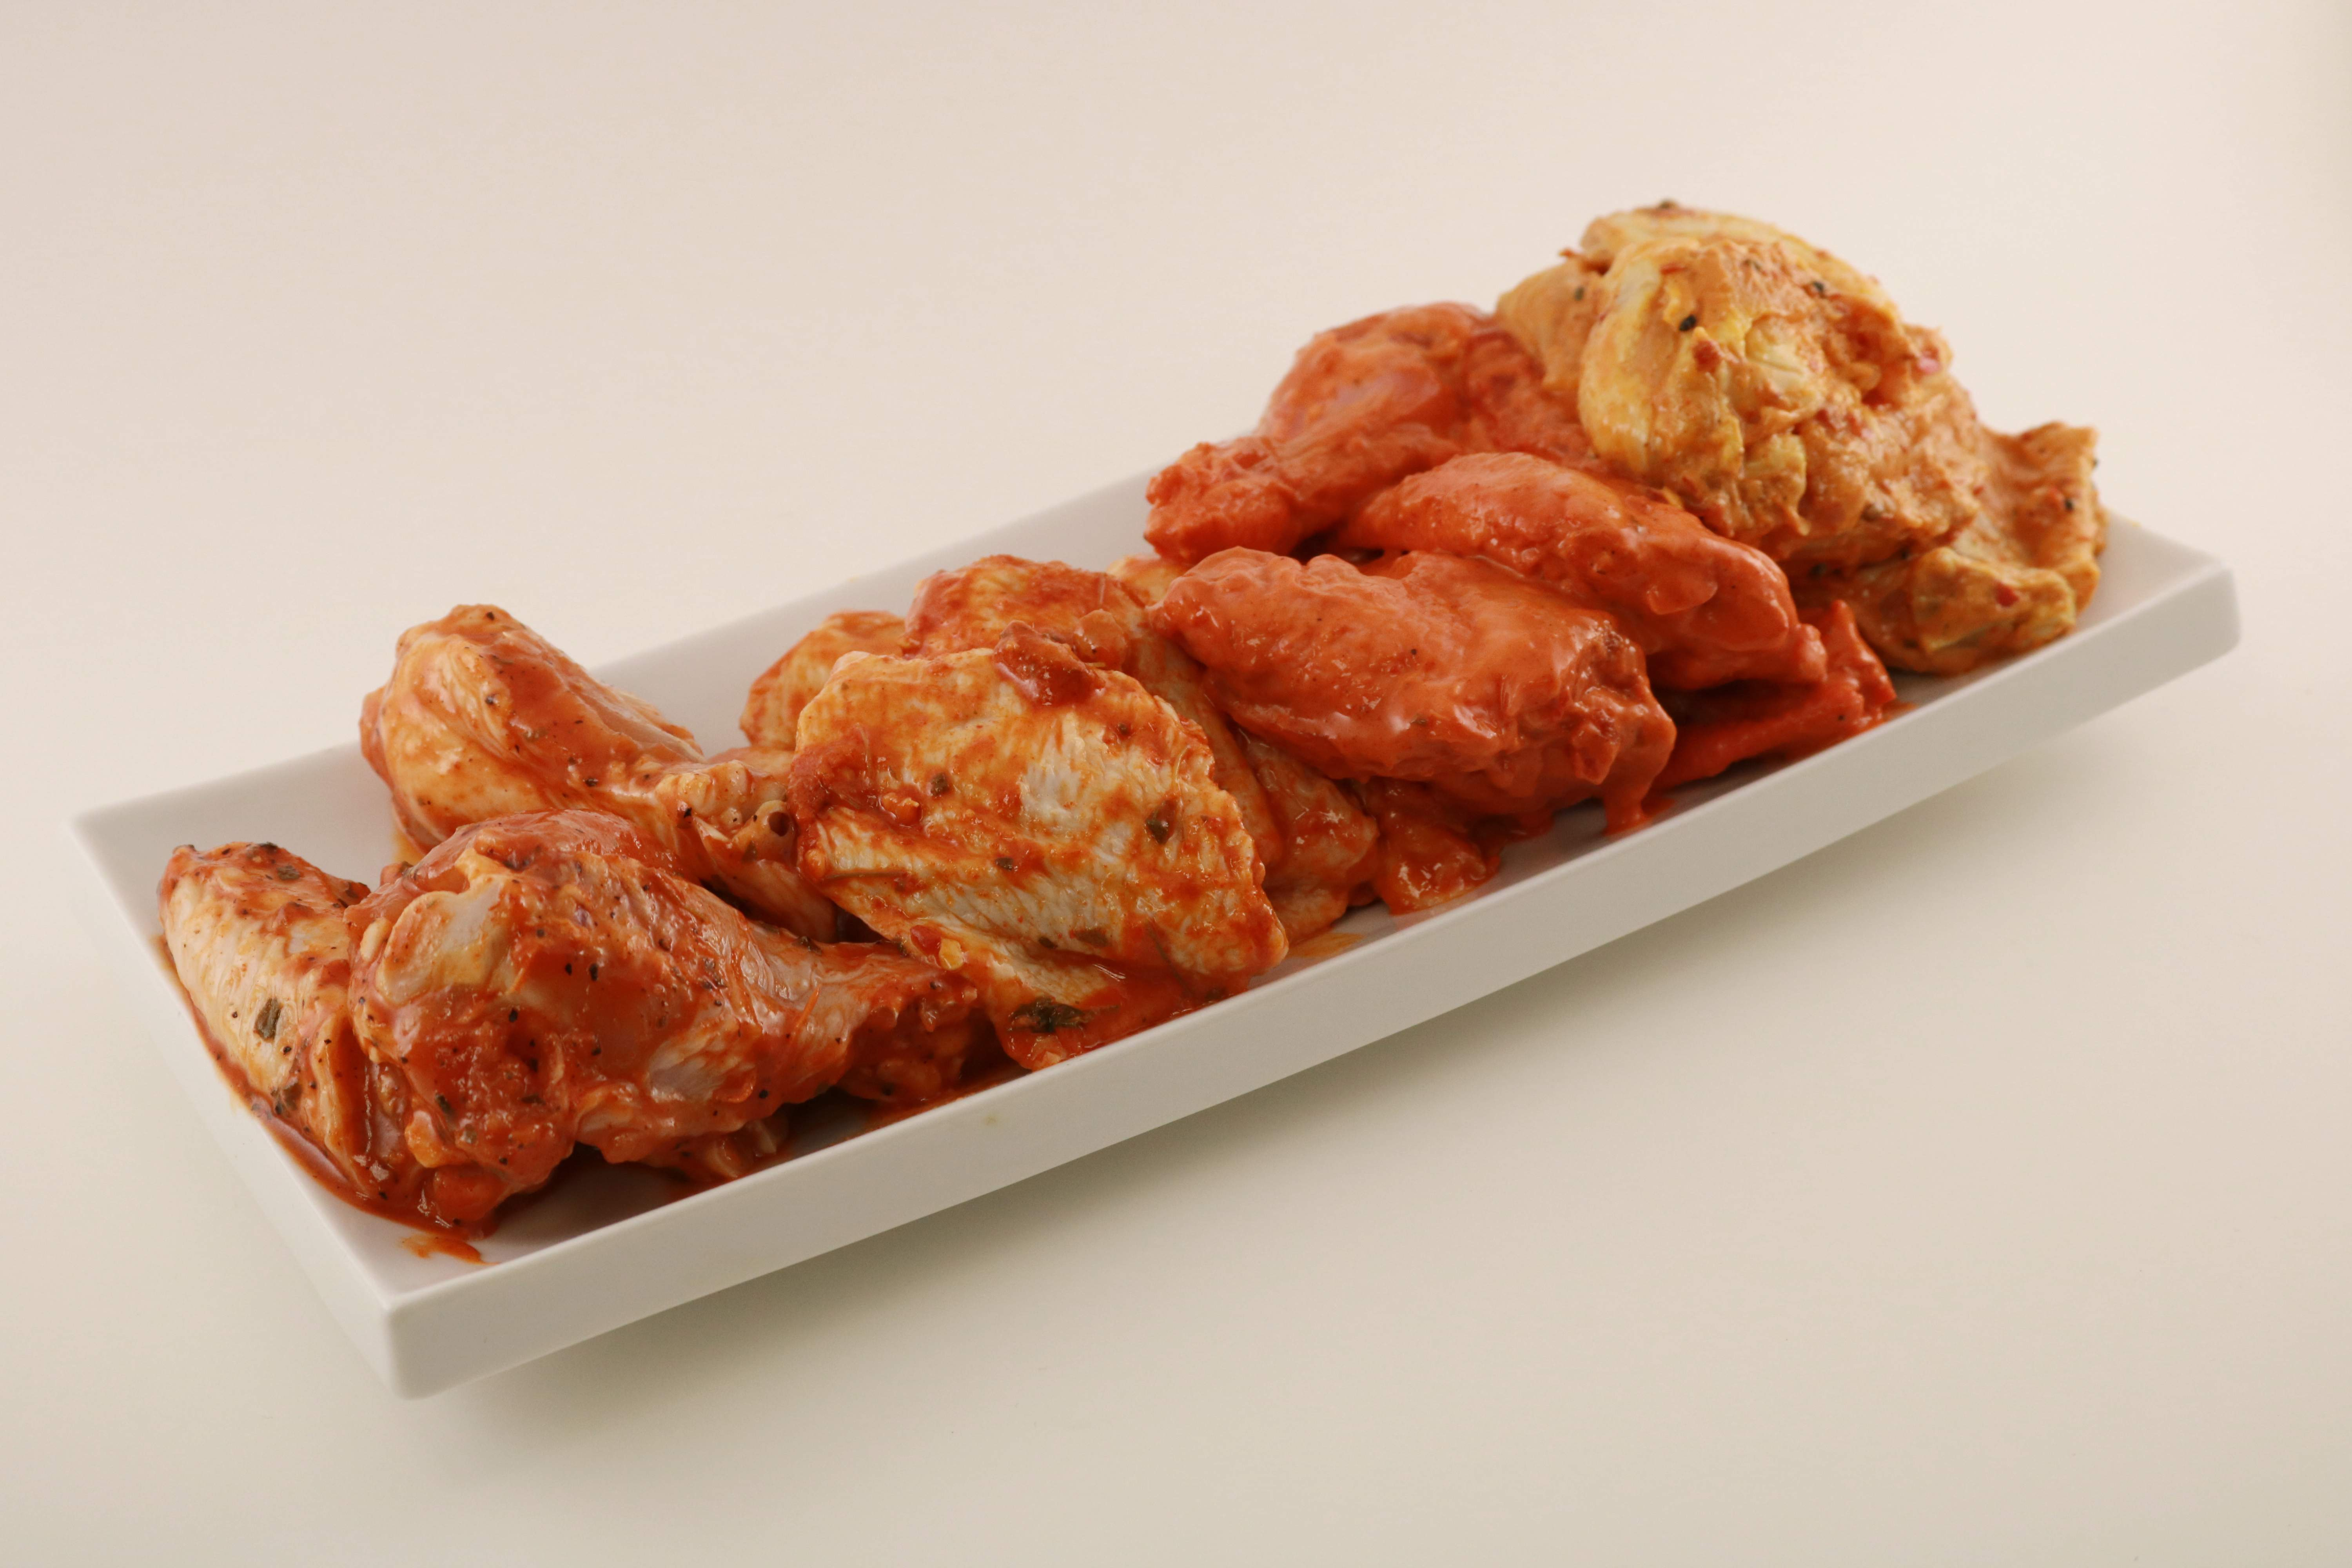 Raw Marinated Wings Image